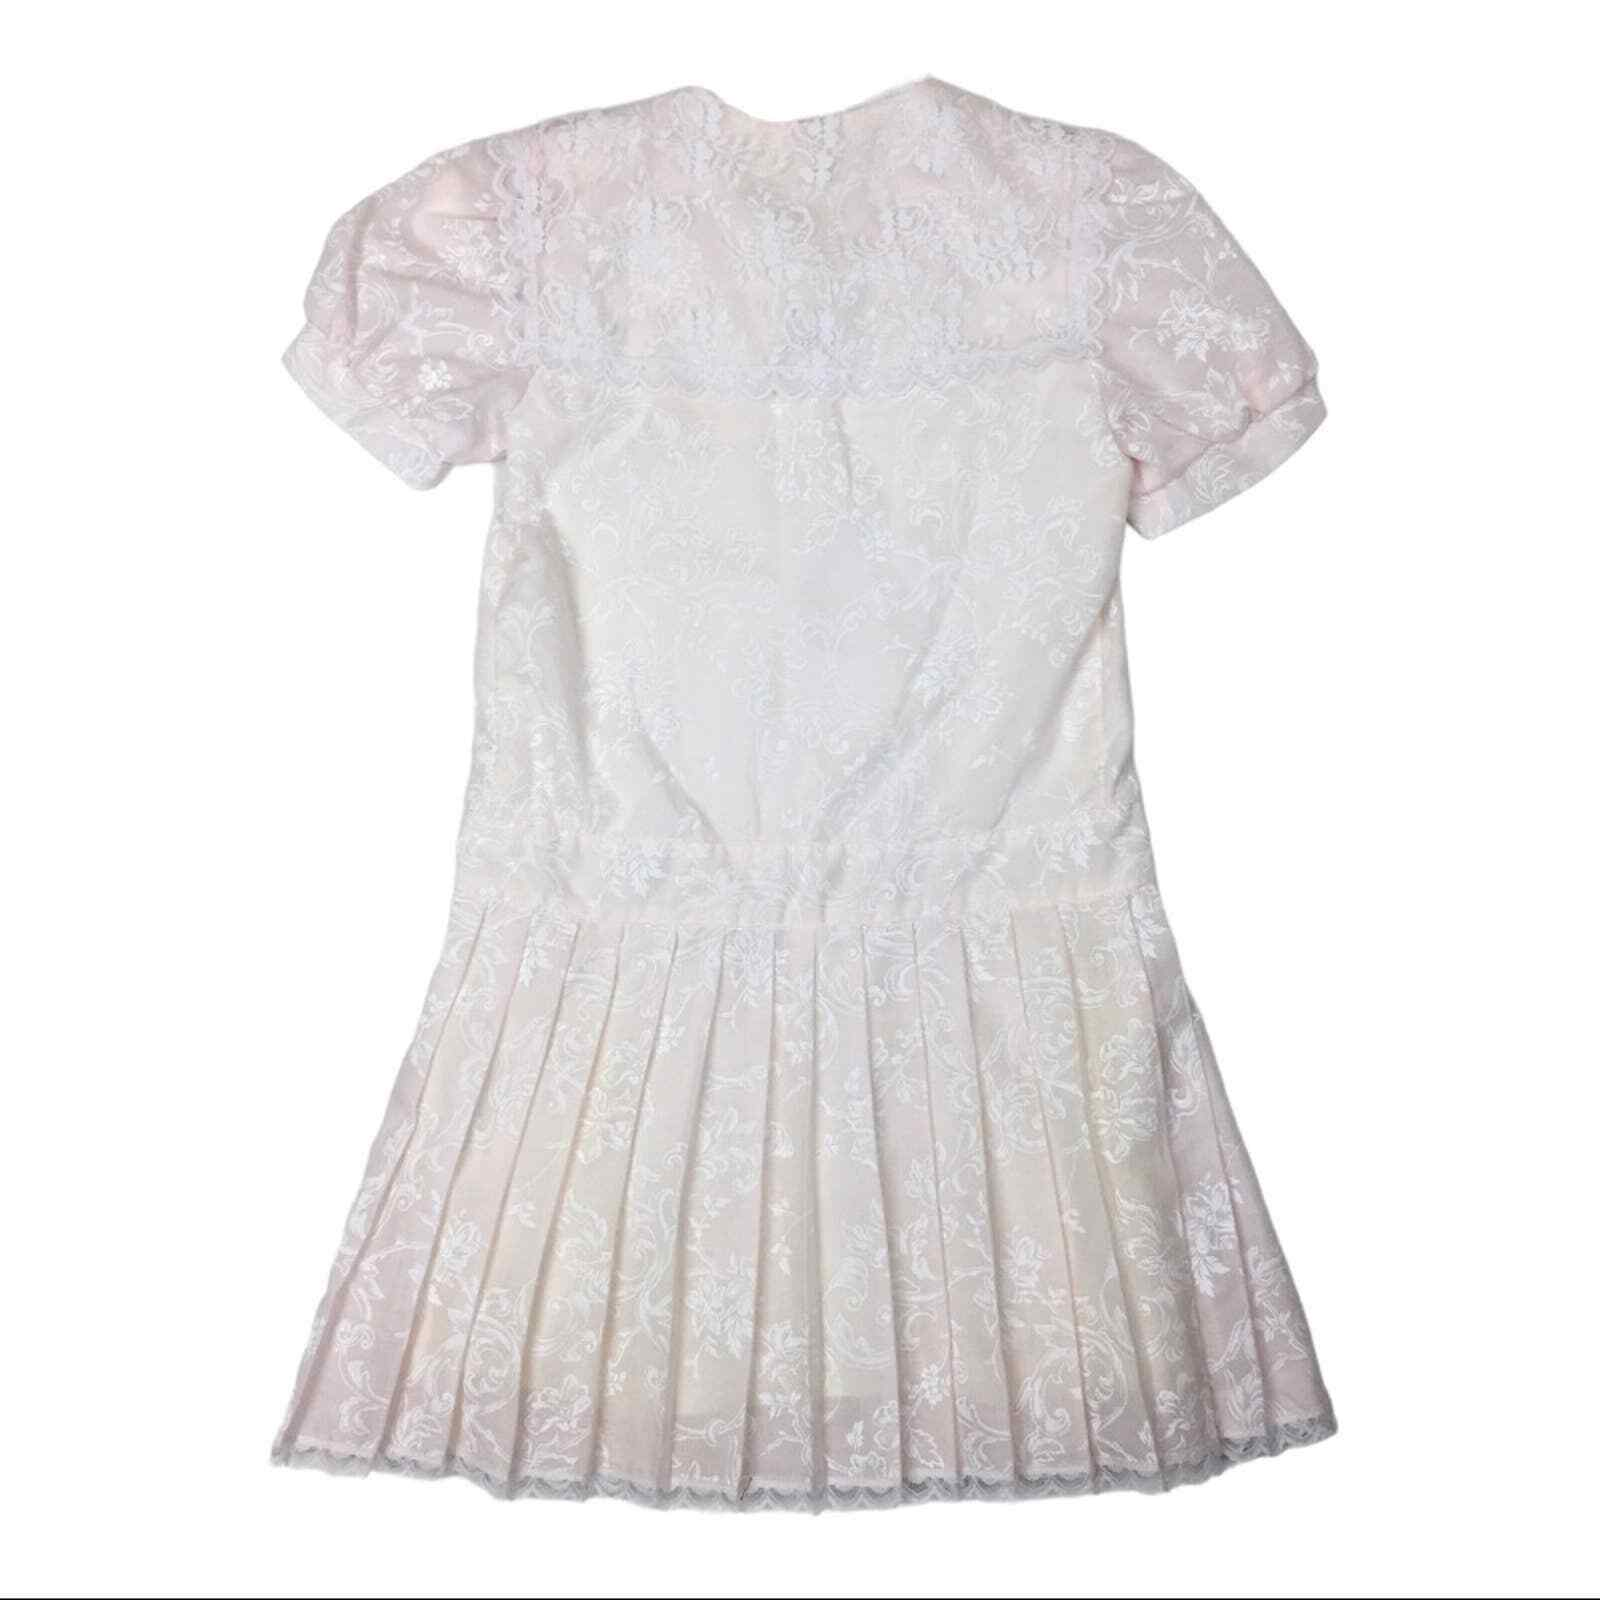 Vintage Gunne Sax lace and floral pleated skirt g… - image 3